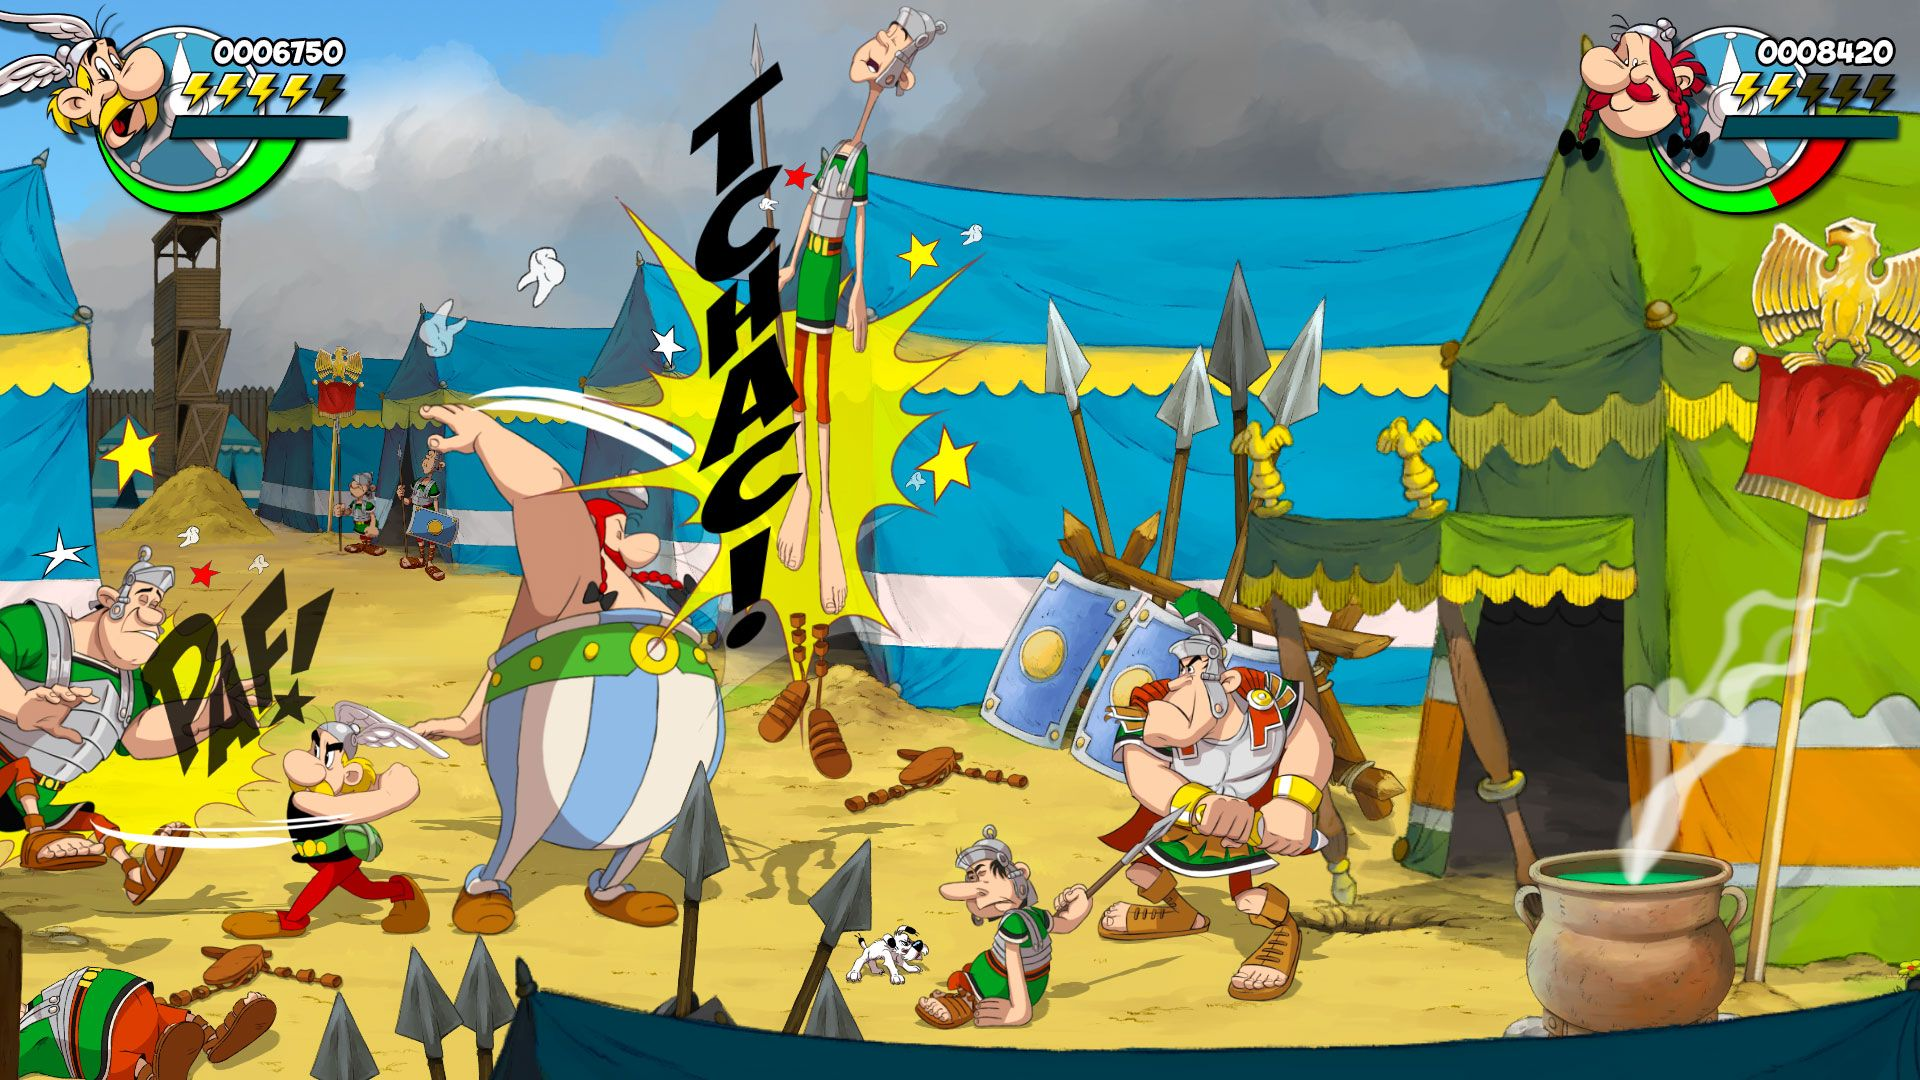 Asterix and Obelix: Slap them All! Artwork